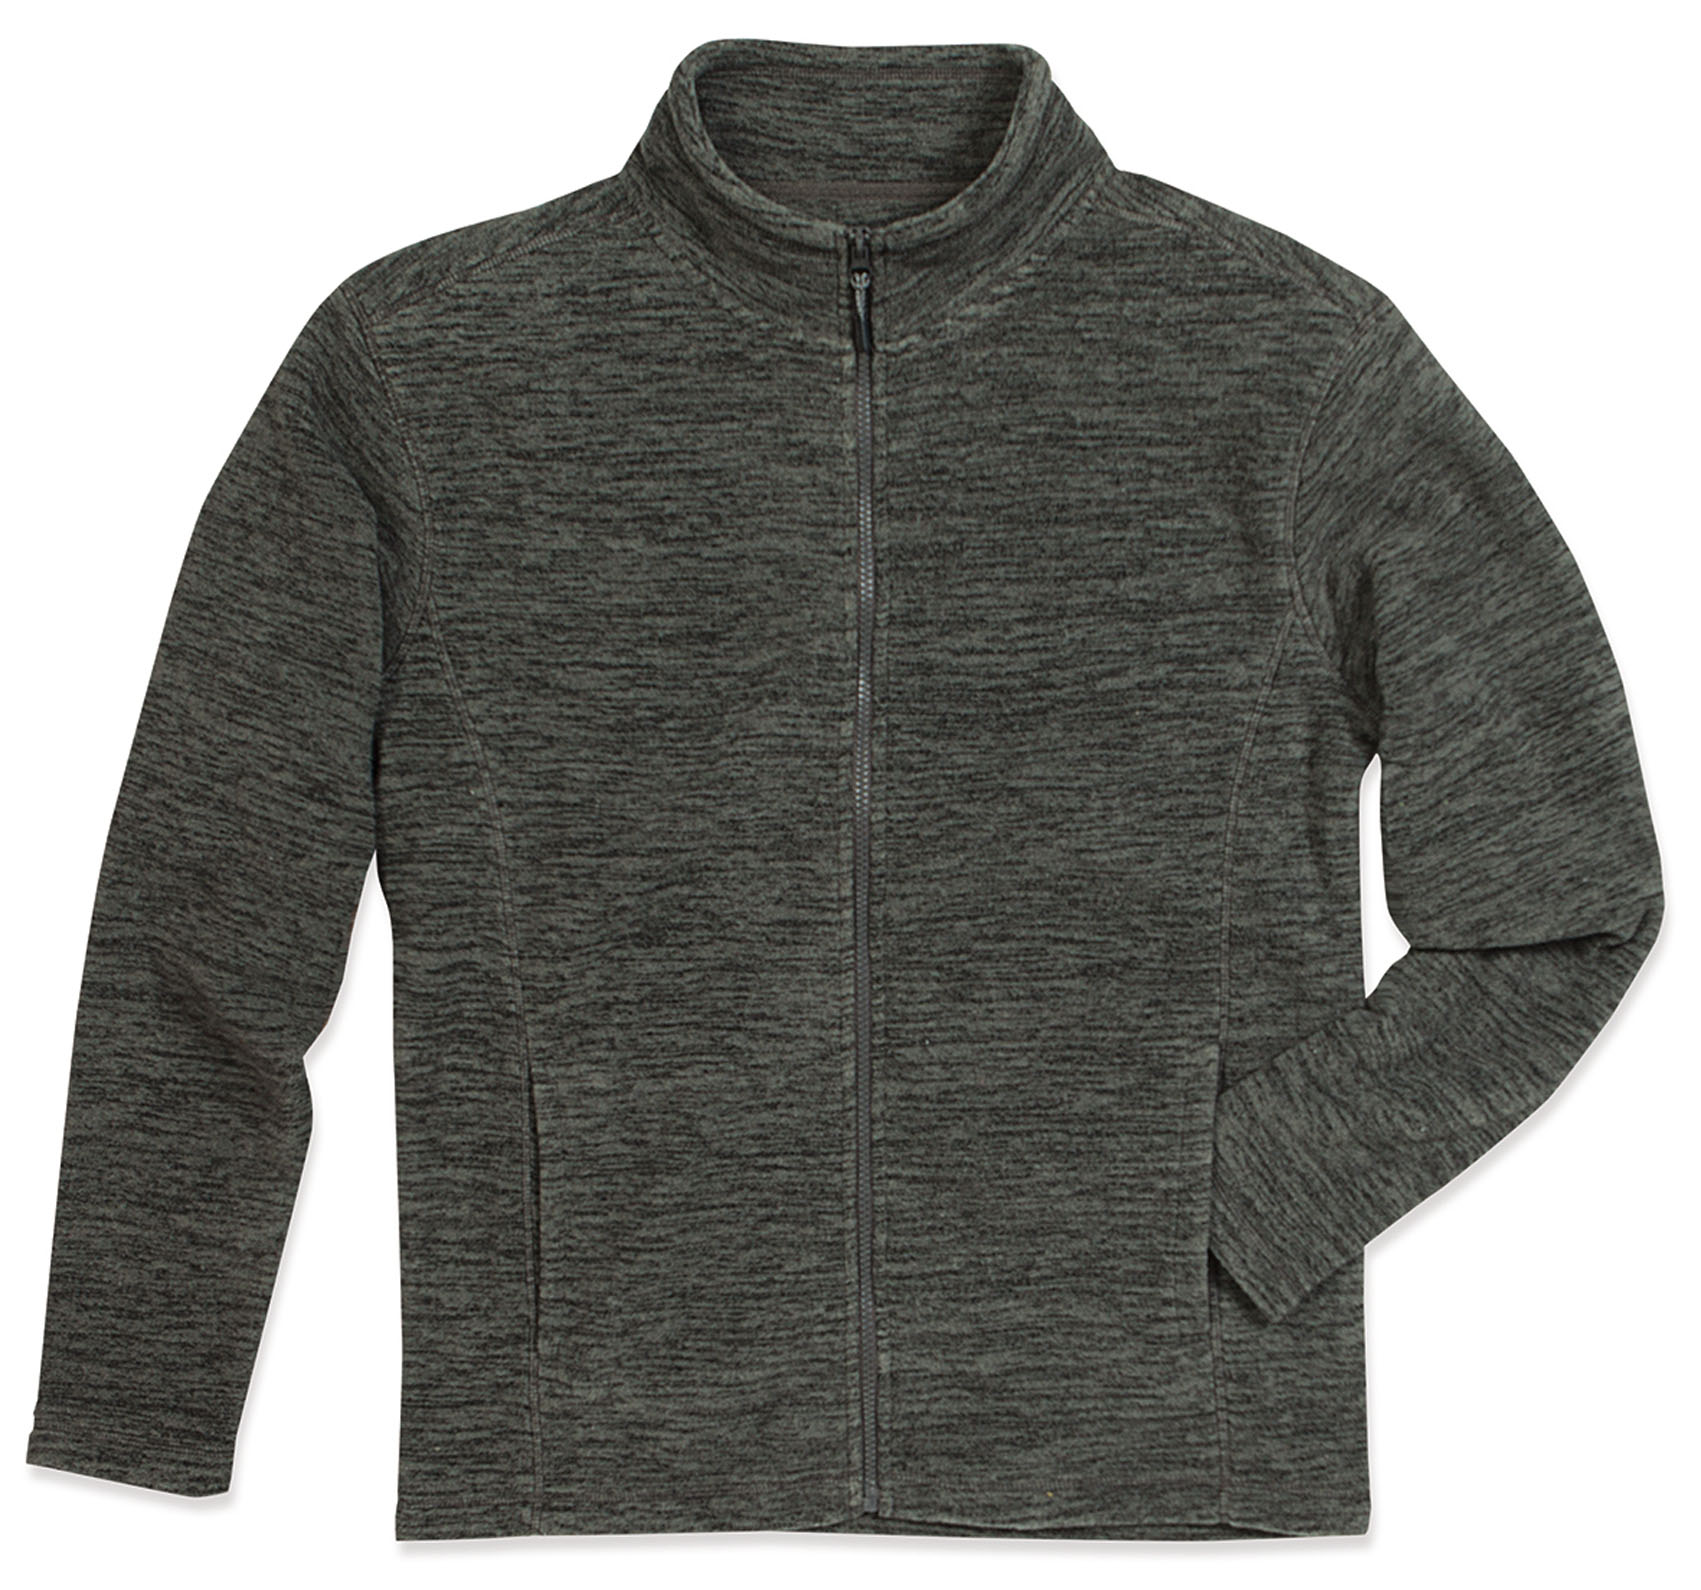 Stedman Melange Fleece Jacket Active for him